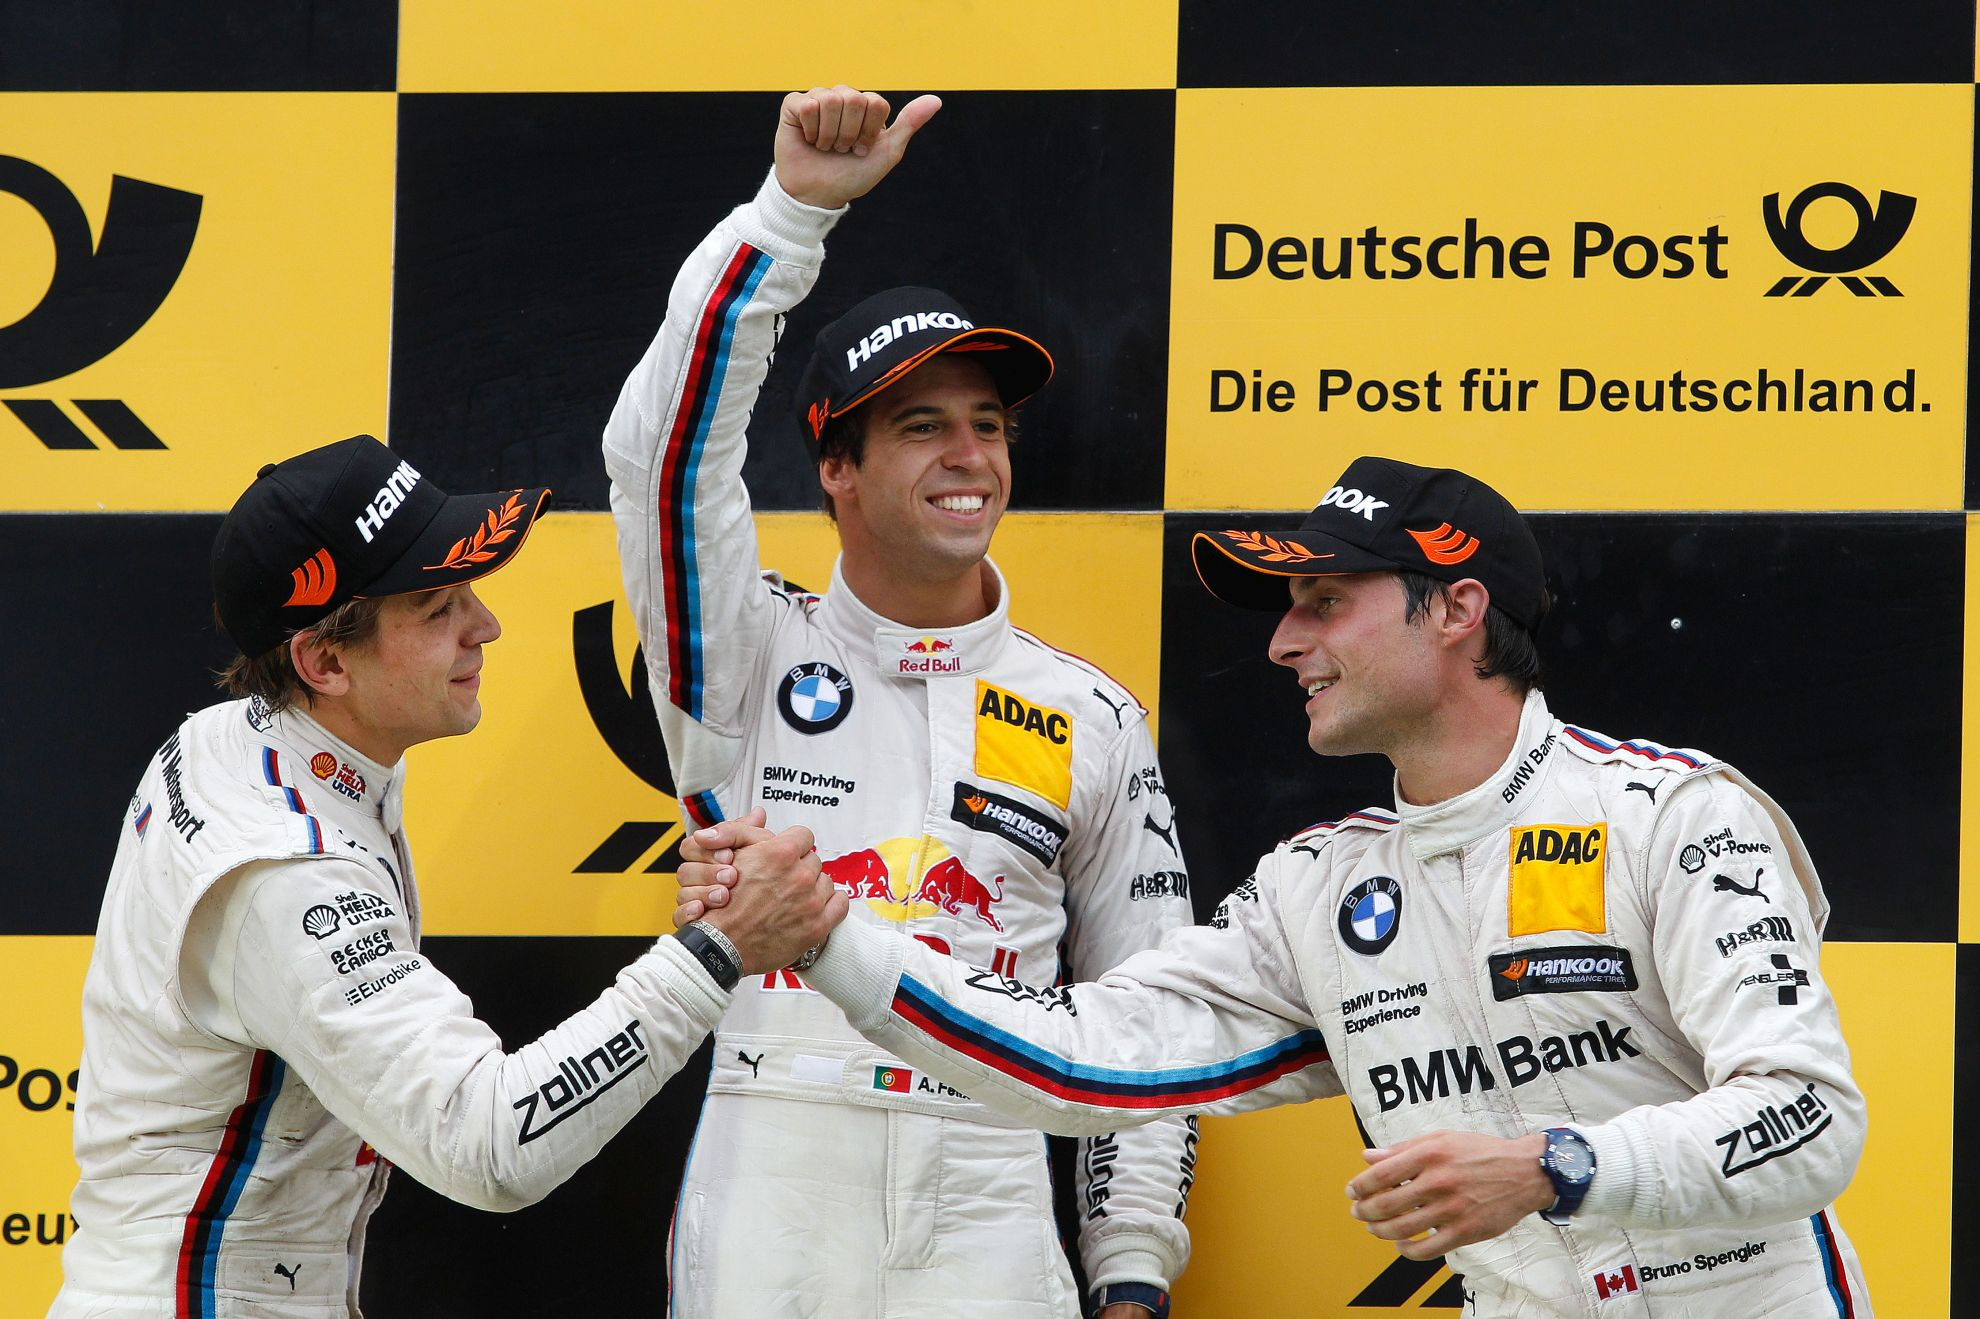 Félix-da-Costa-claims-first-DTM-win-of-his-career-in-Zandvoort-–-Five-BMW-M4-DTMs-out-in-front